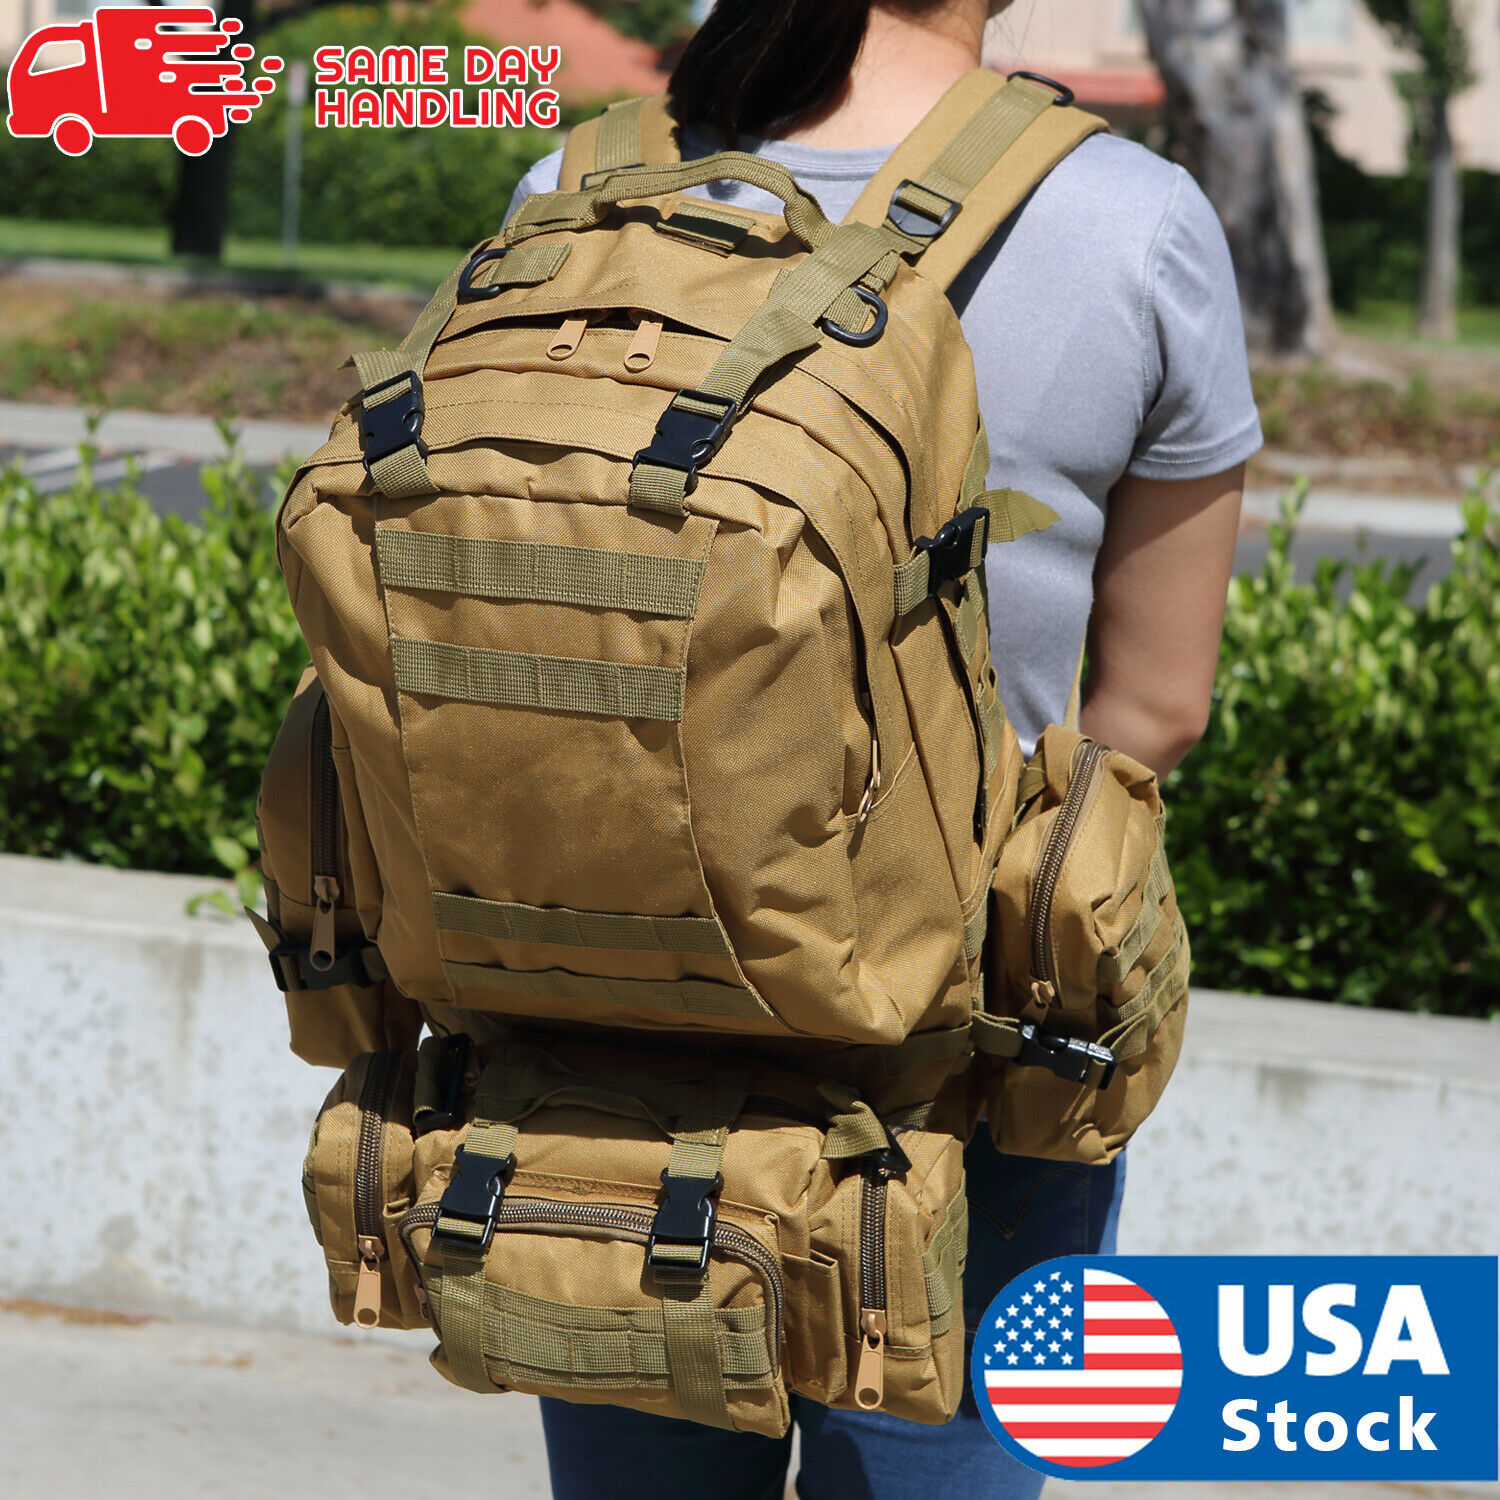 US 55L Molle Outdoor Military Tactical Bag Camping Hiking Trekking Backpack Camping & Hiking